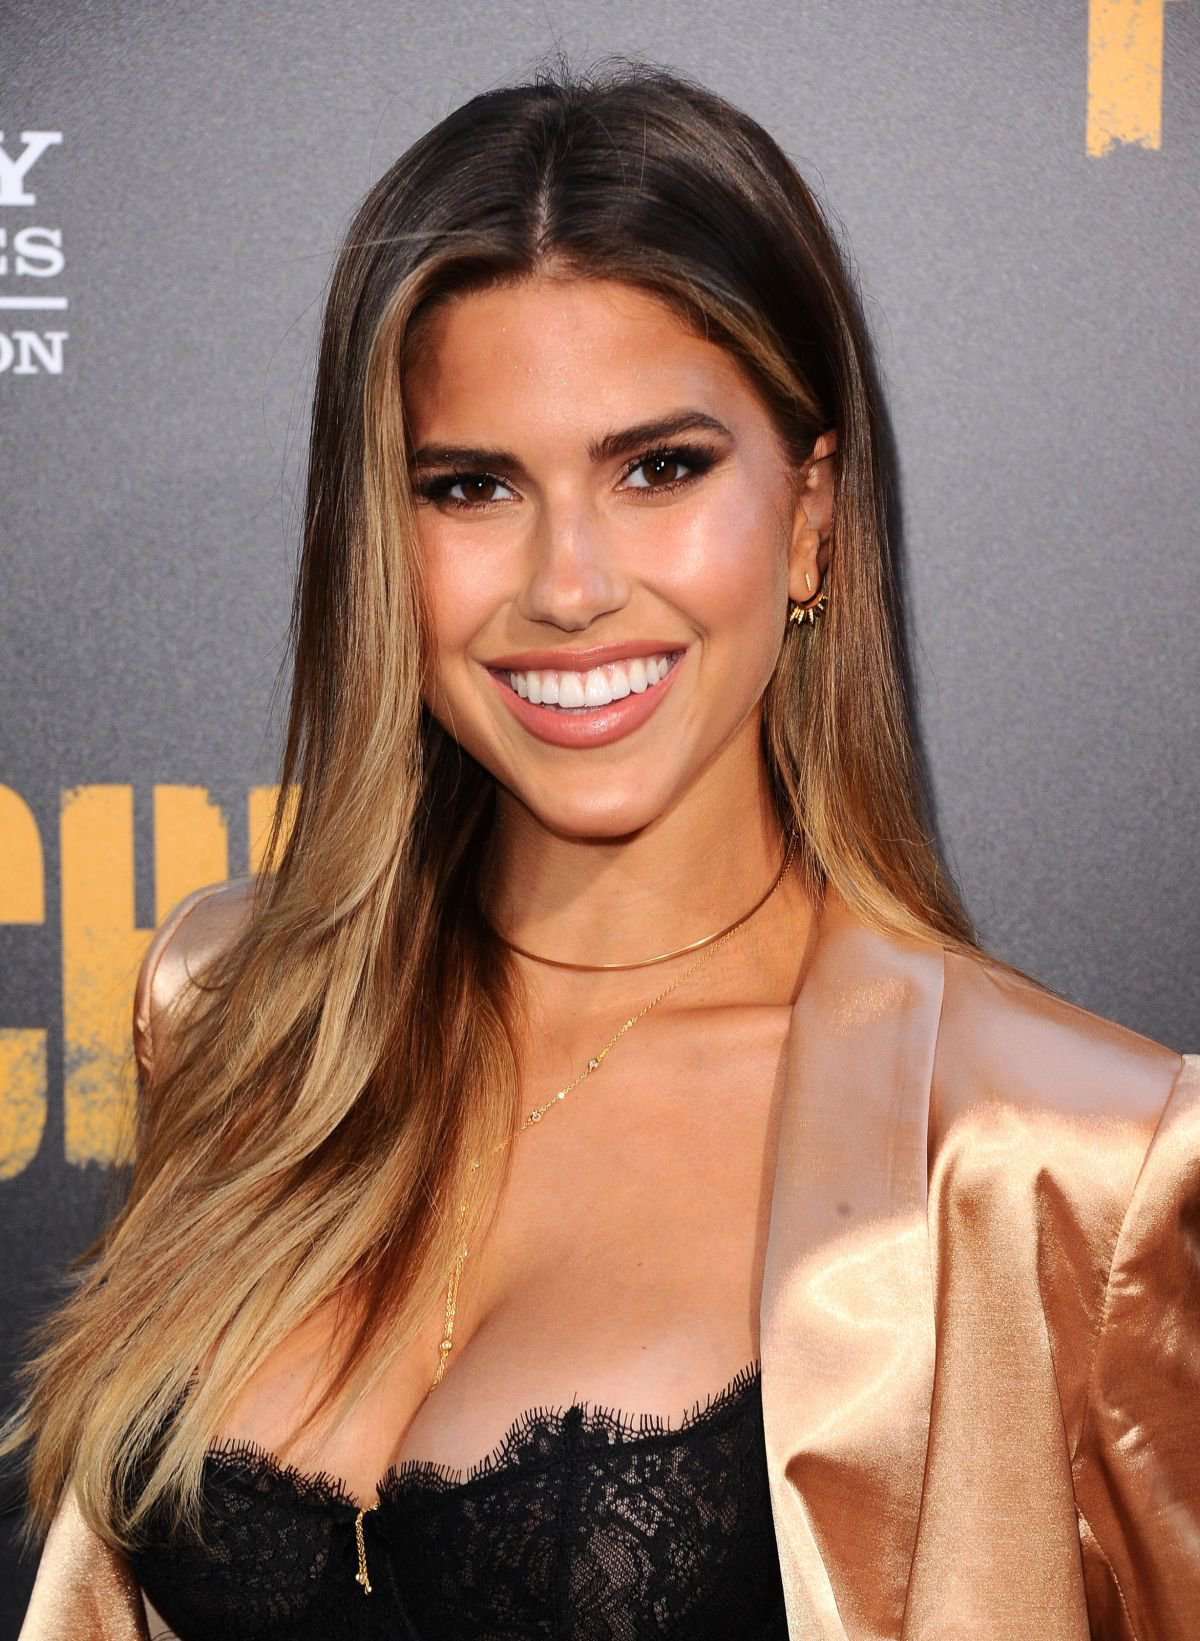 Kara Del Toro Cleavage - The Fappening Leaked Photos 2015-2021